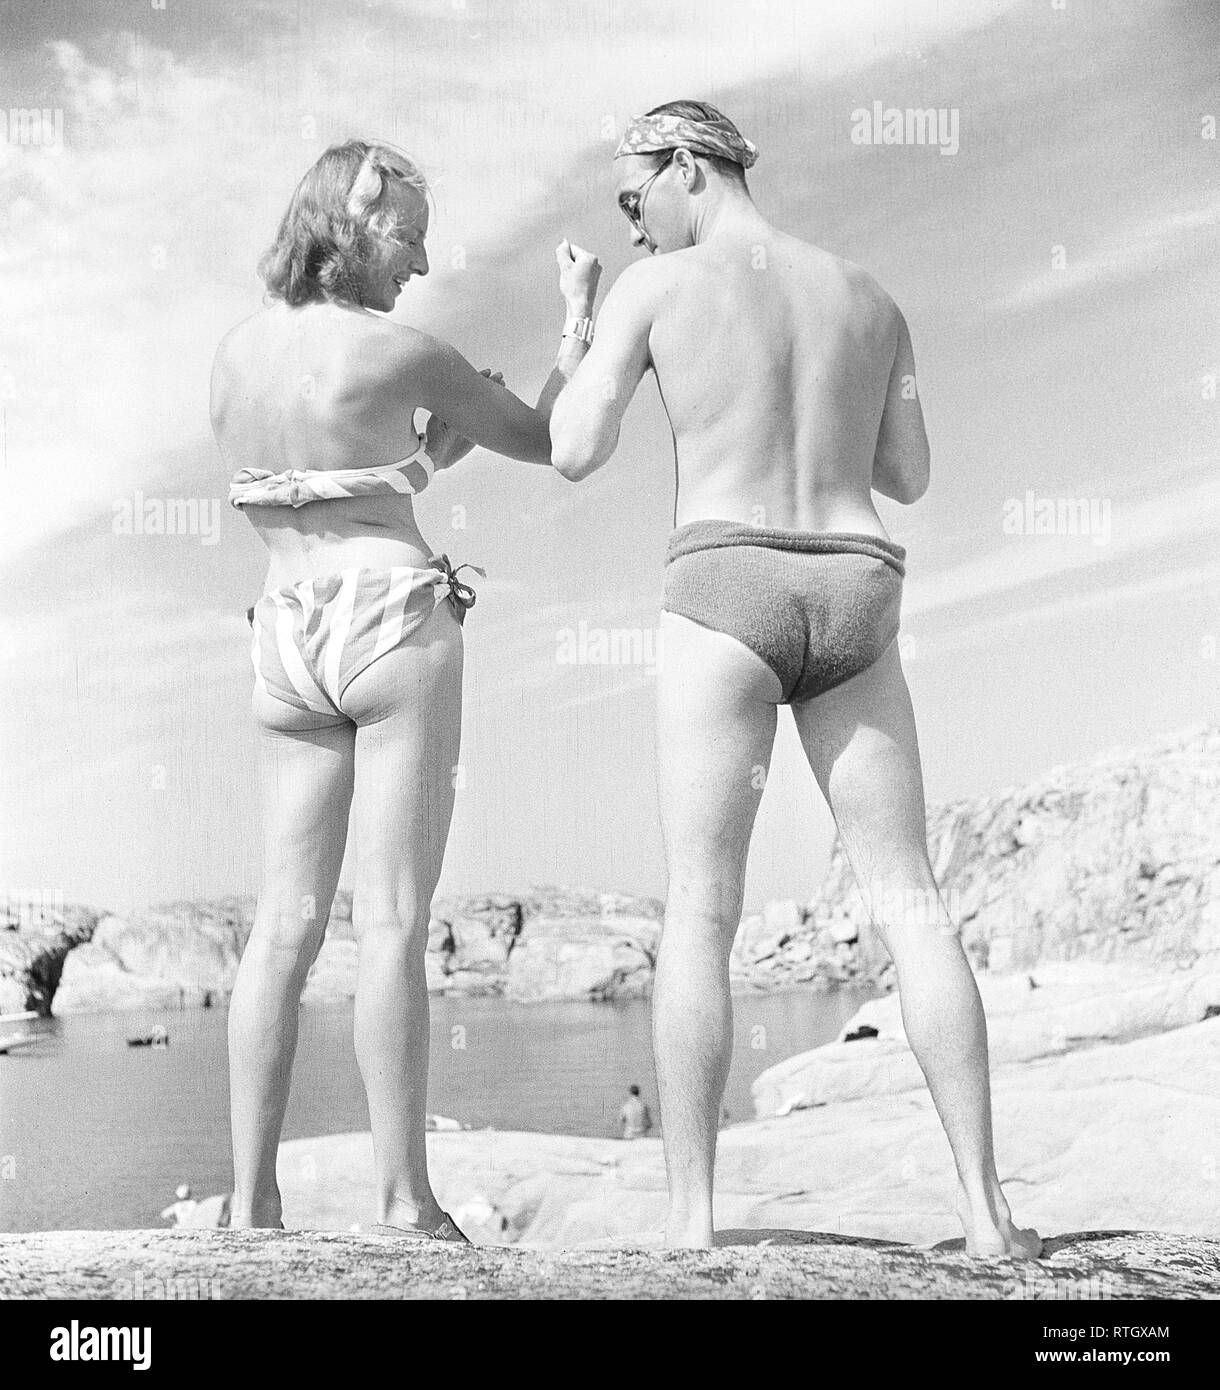 On the beach in the 1940s. A couple is photographed from behind and they look as if they are comparing their arm muscles. She is wearing a bikini and he's wearing a pair of bathing shorts, both equally bad looking in both fitting and fabric.  Photo Kristoffersson ref AC125-6 Sweden 1947 - Stock Image